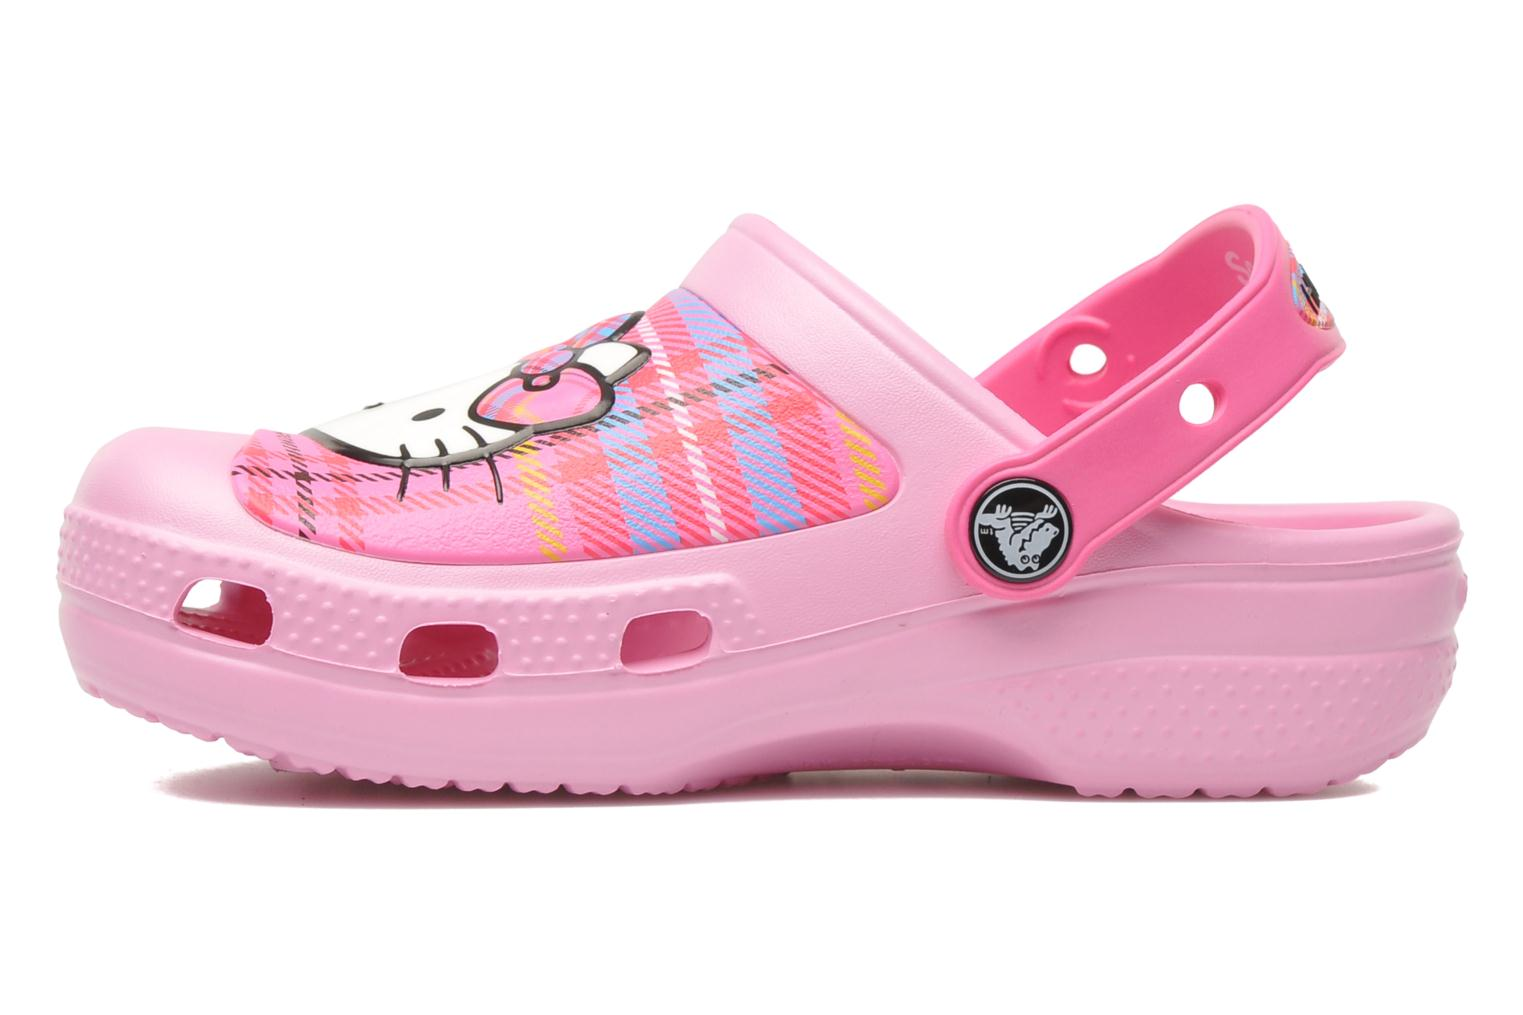 Crocs Creative Crocs Hello Kitty Plaid Clog Sandals in Pink at Sarenza co uk